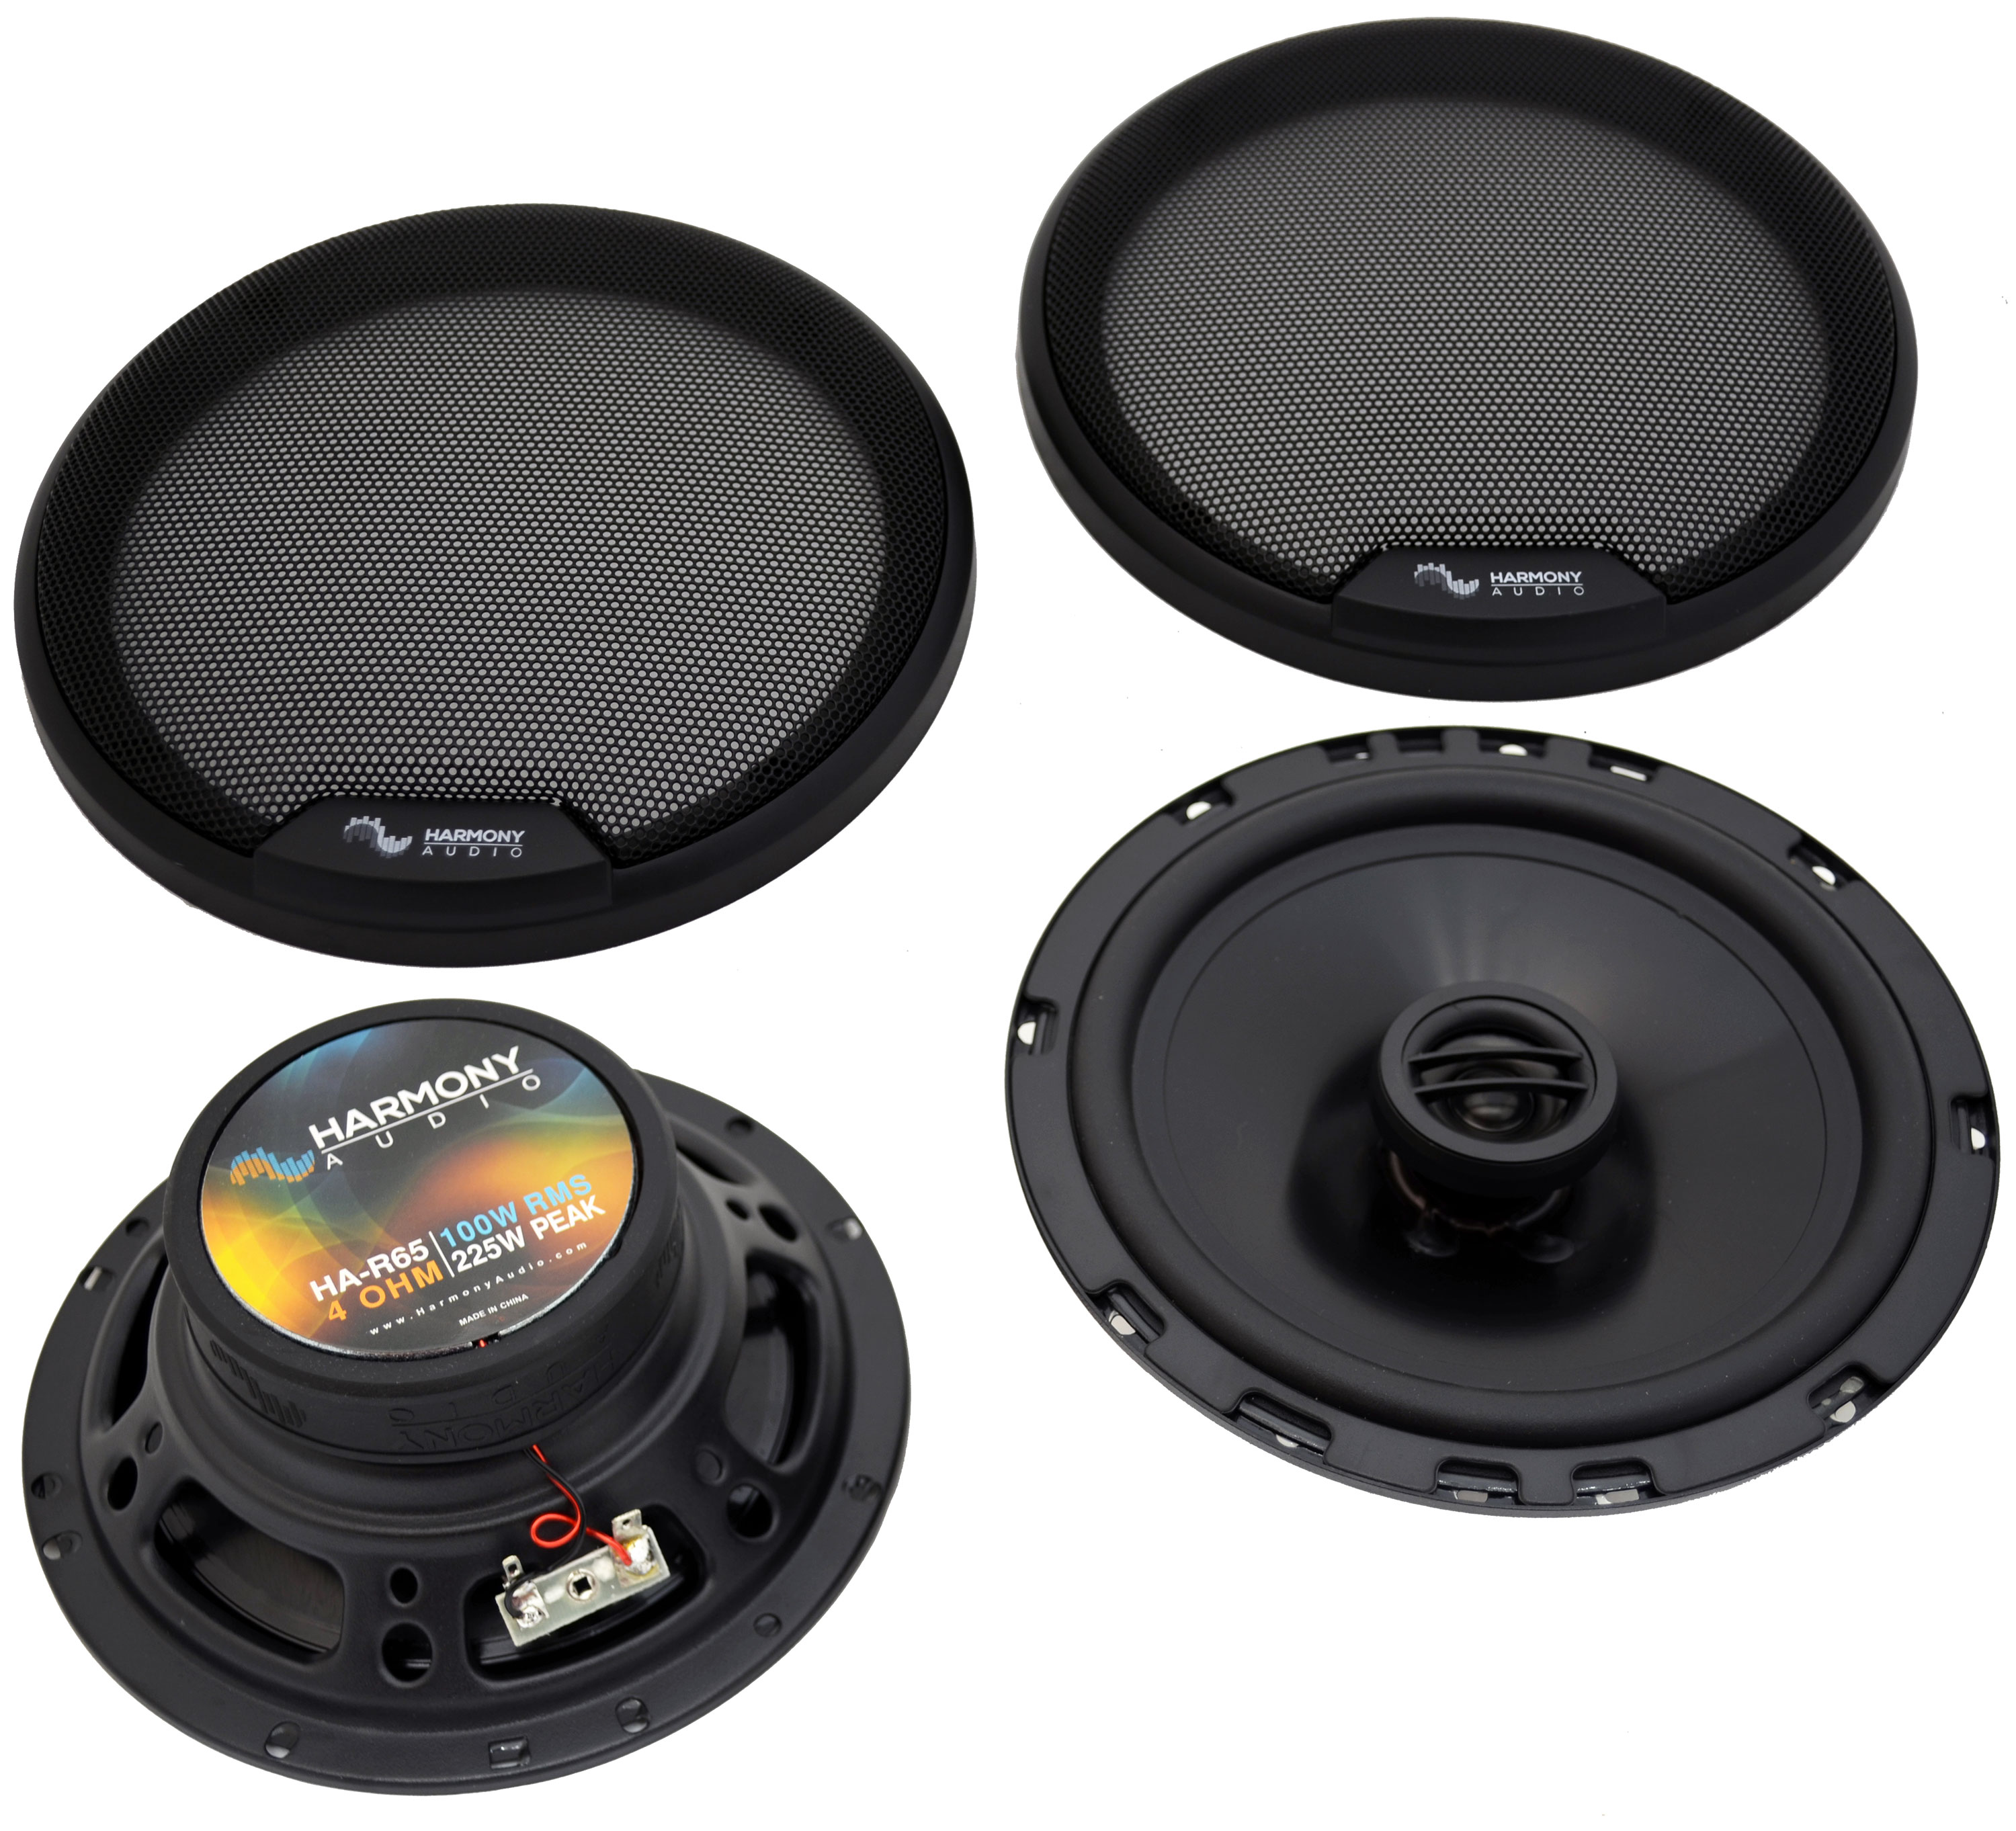 Fits Acura NSX 1994-2005 Rear Deck Replacement Speaker Harmony HA-R65 Speakers